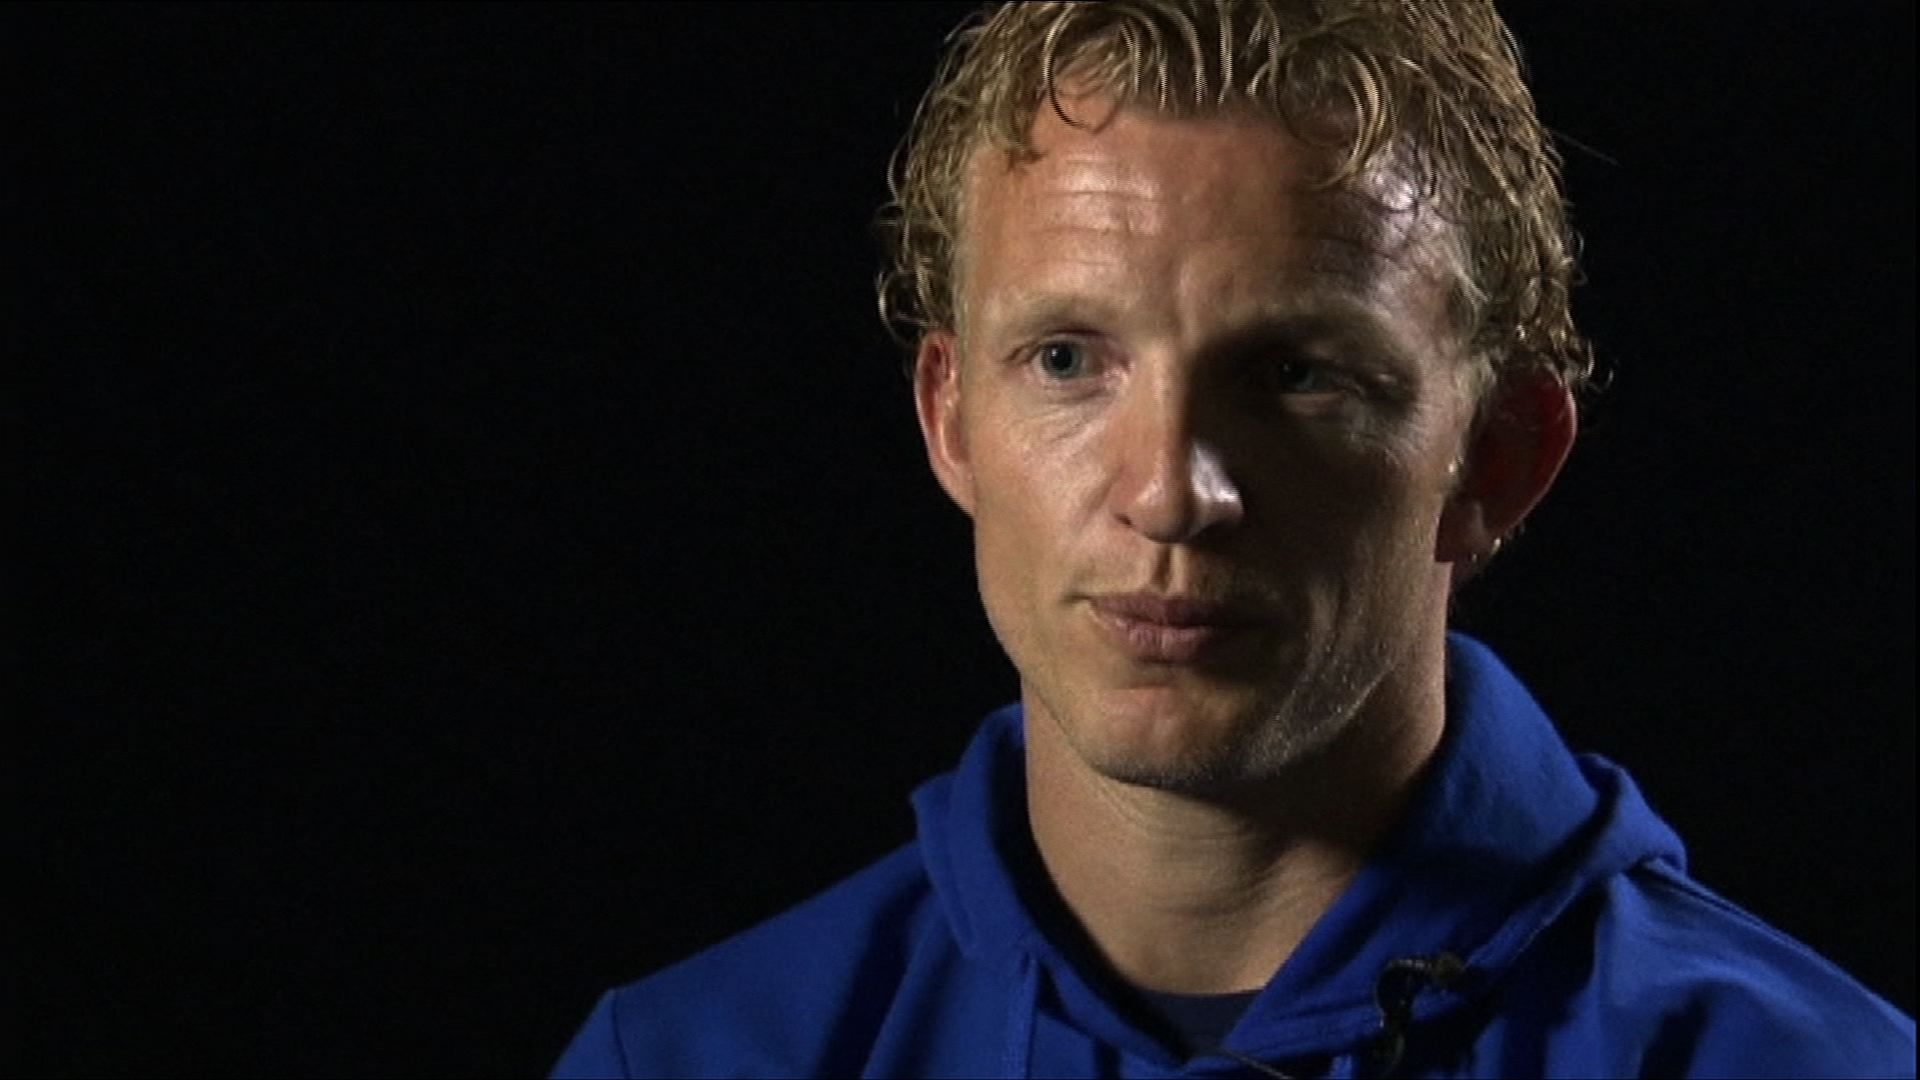 Van Gaal is a winning coach and a special person - Dirk Kuyt